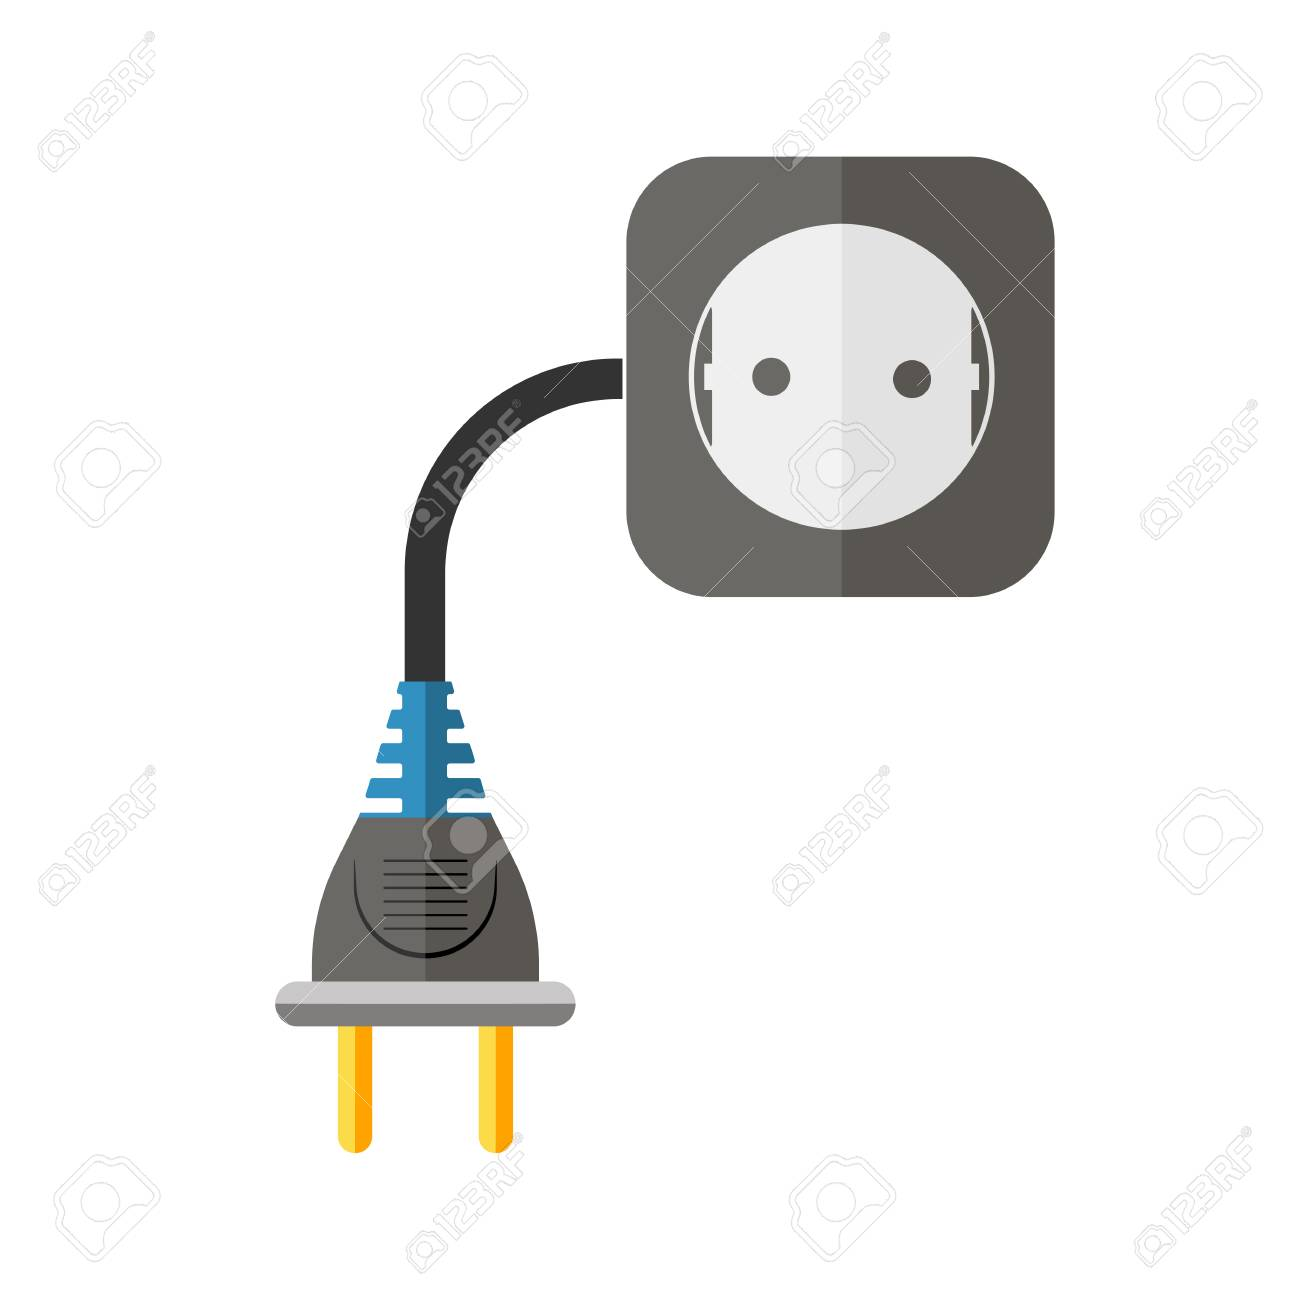 Power Extension Cord In Flat Design. Vector Illustration. Abstract ...